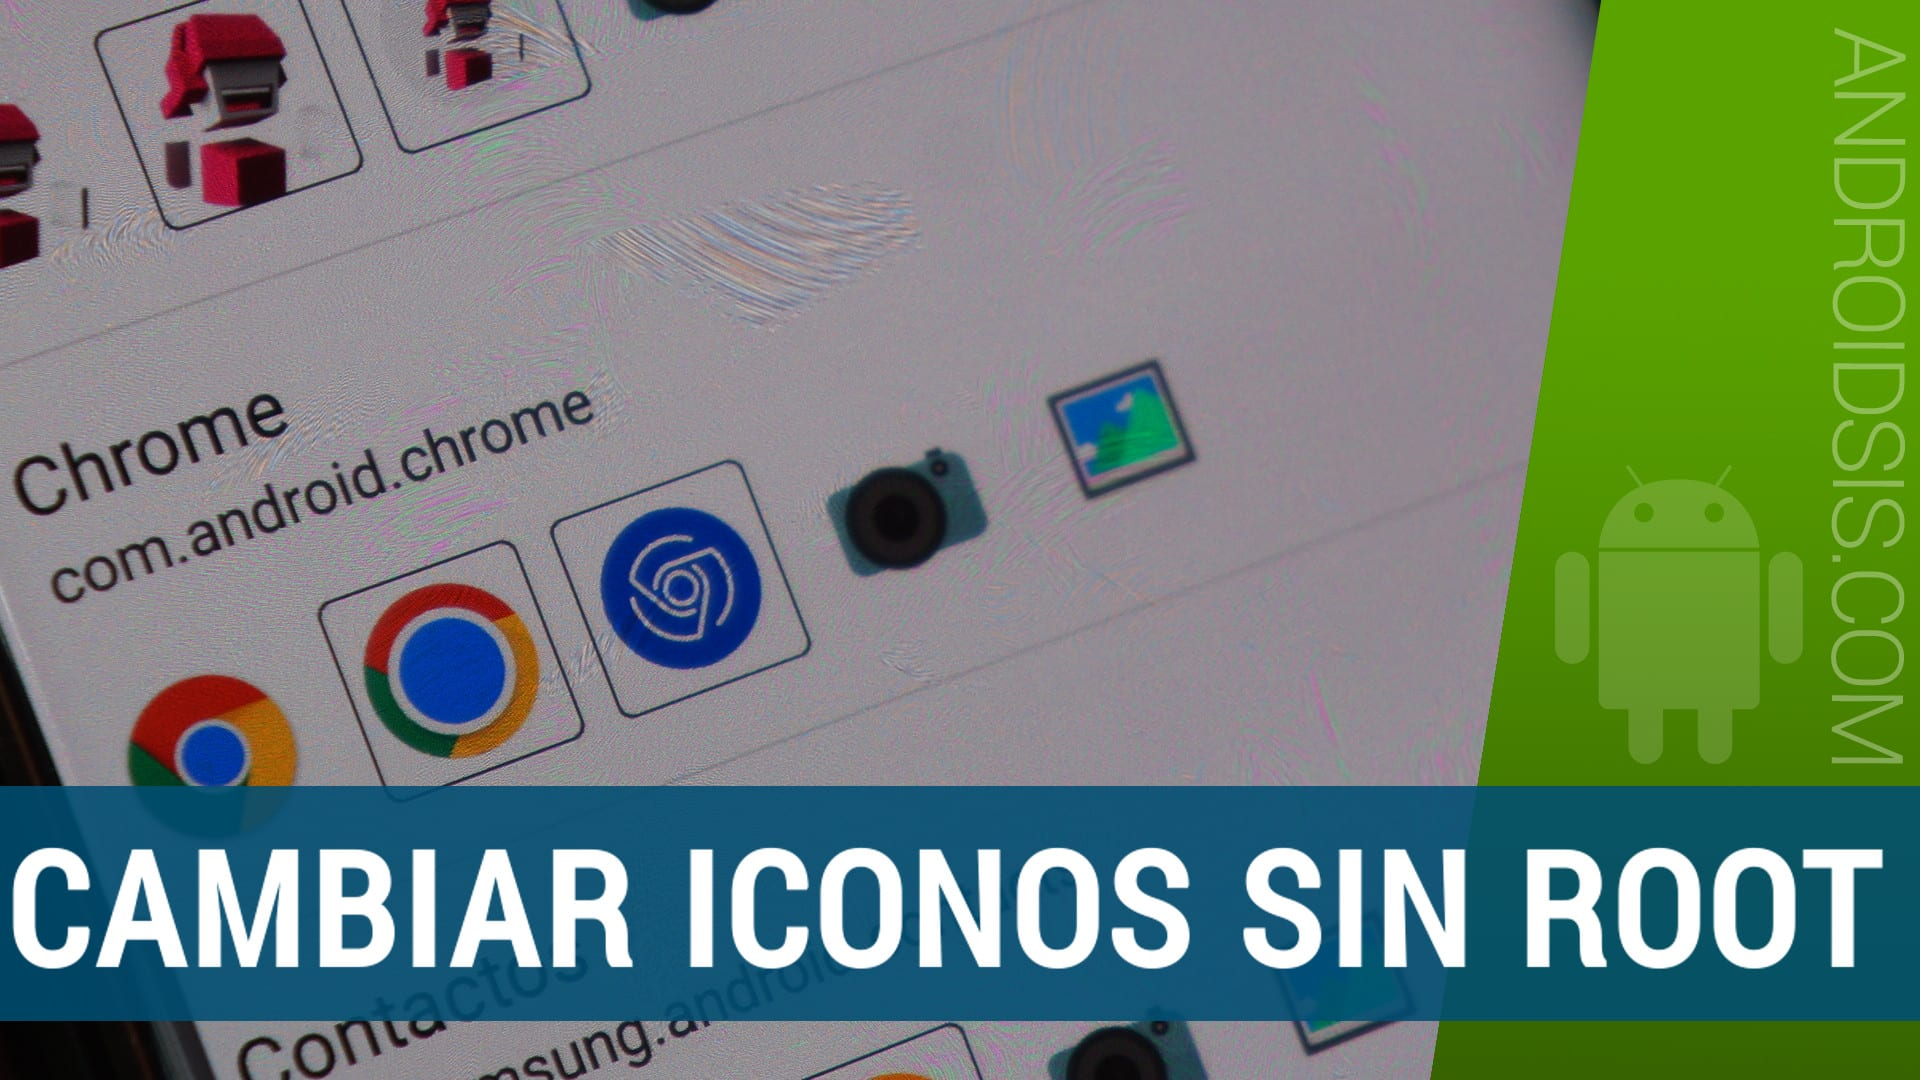 Cambiar iconos Android,